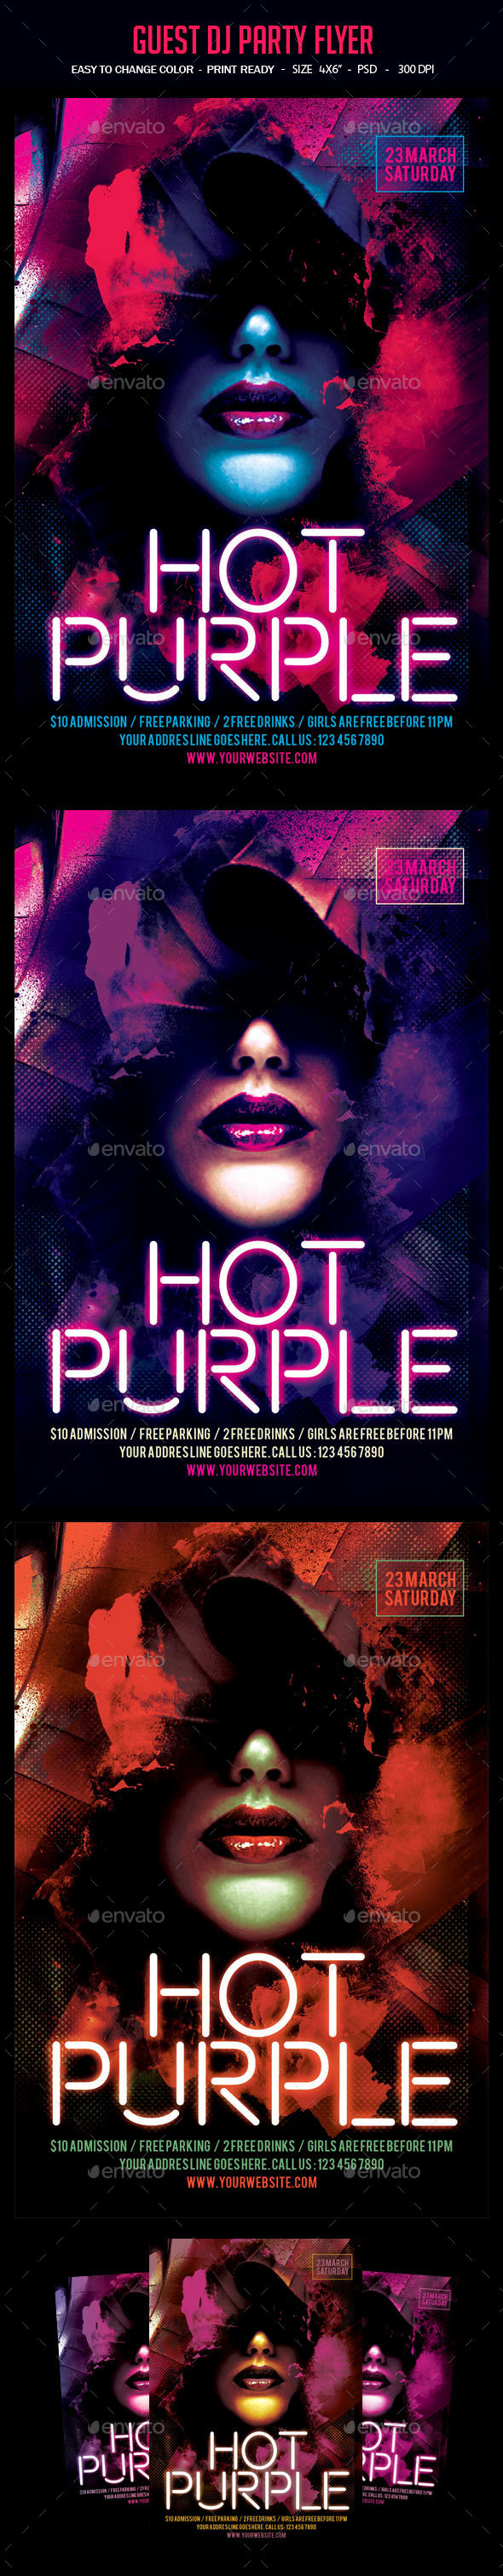 Hot Purple Party Flyer - Clubs & Parties Events